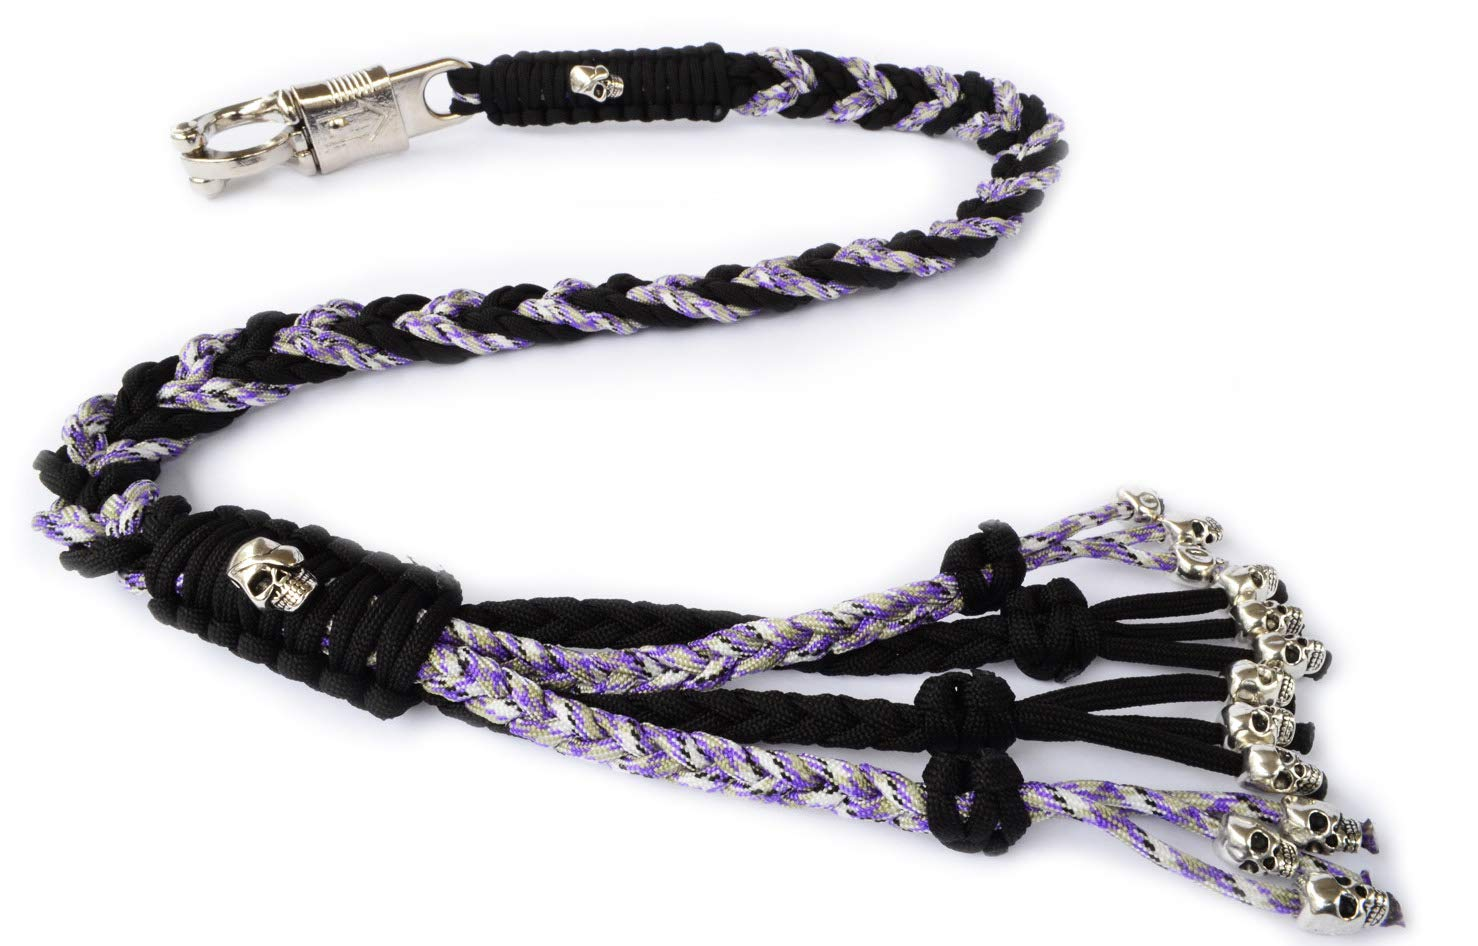 550 Paracord Motorcycle Whip Get Back Whip Metal Skulls 36'' - Mixed Purple/Black